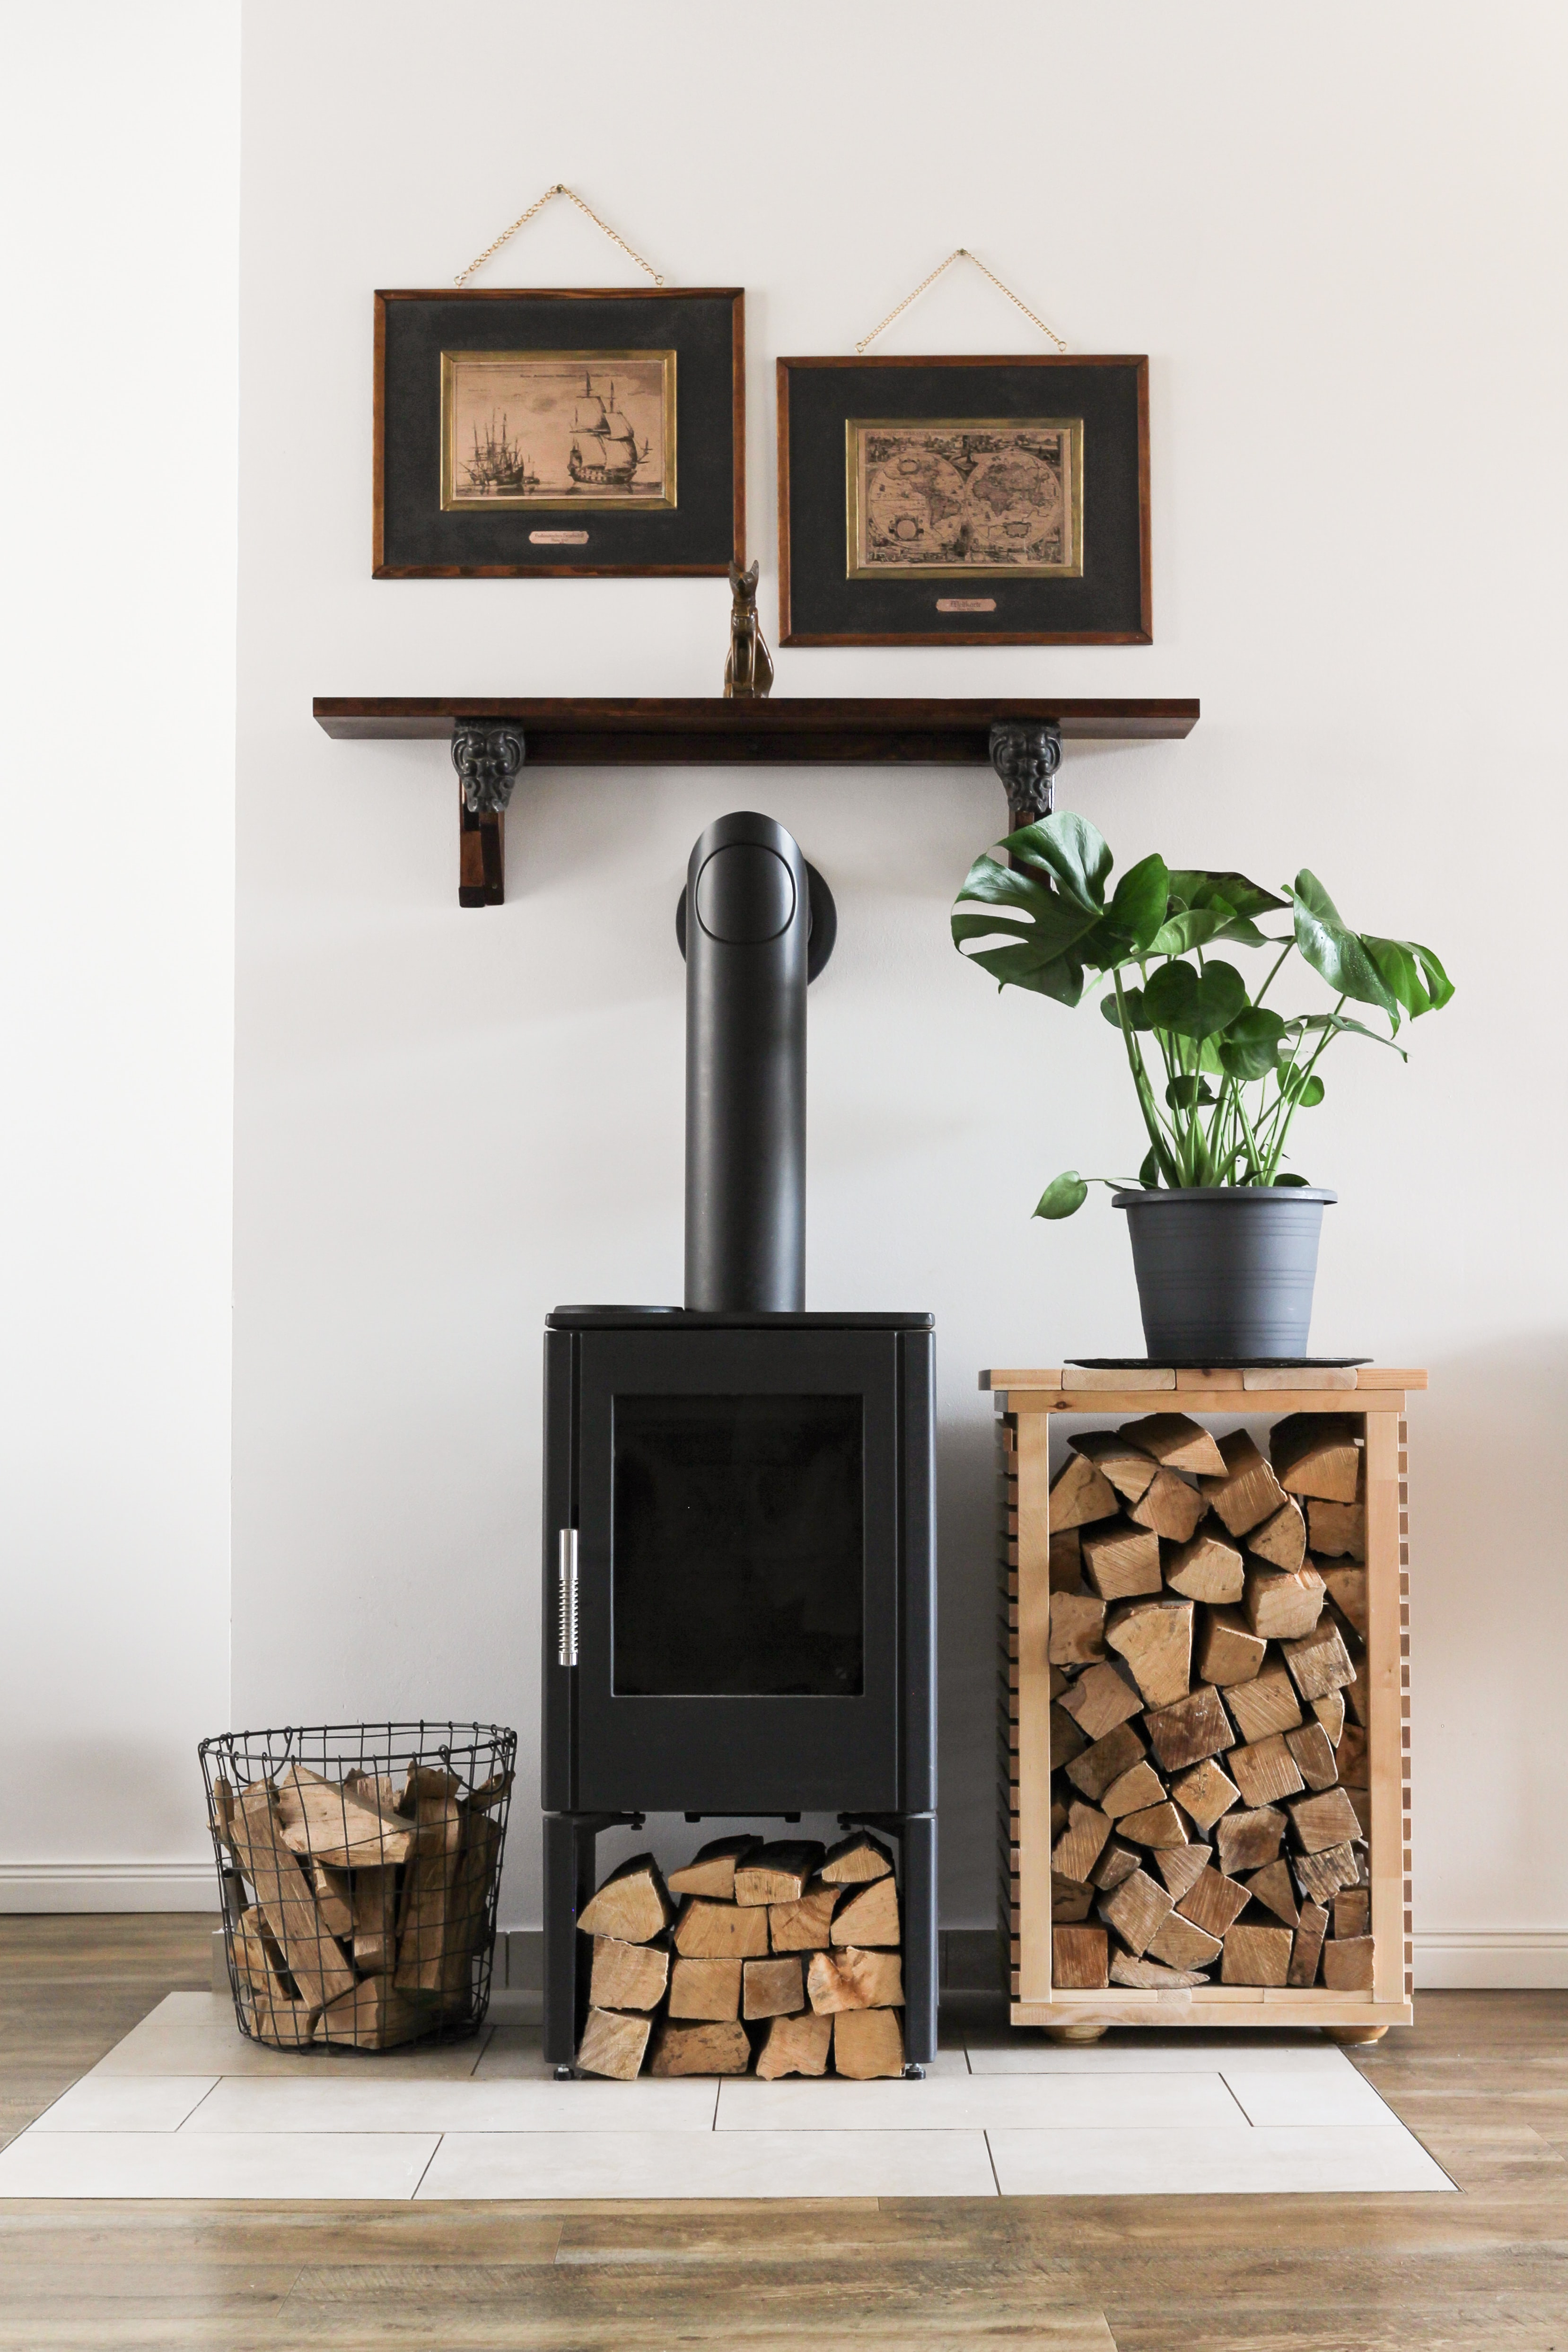 Fireplace in home with wooden logs place around it.